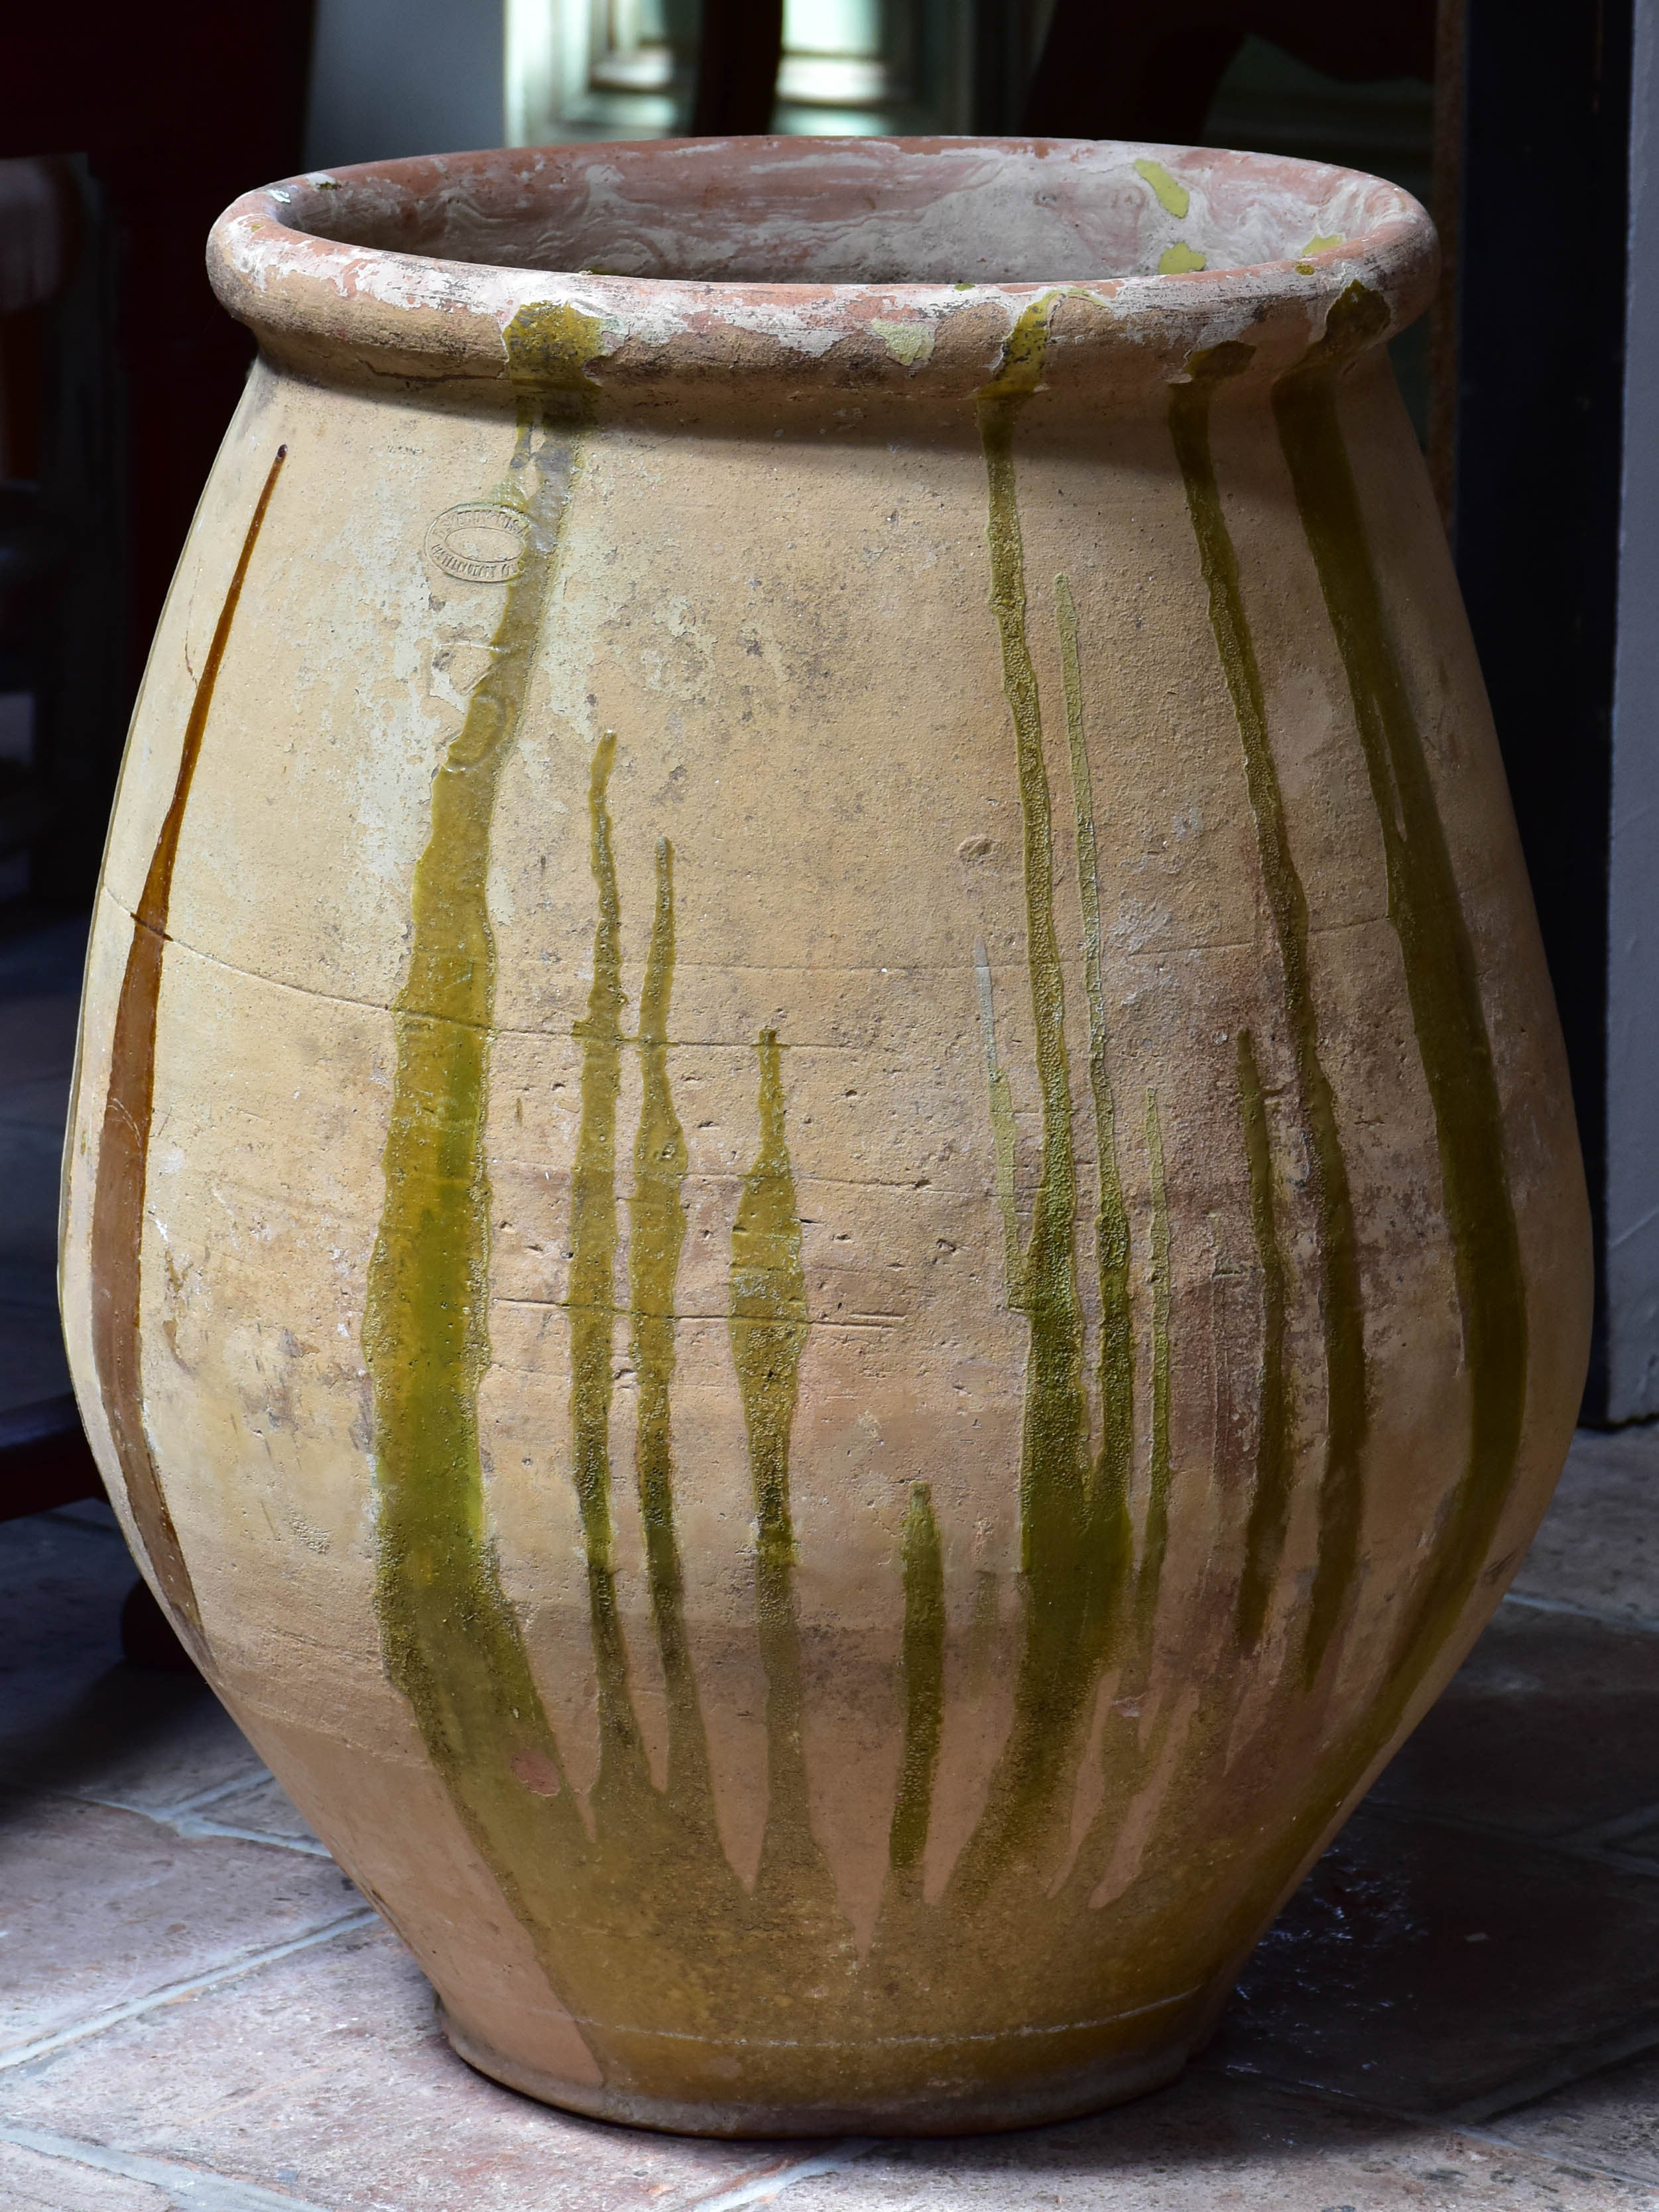 Late 19th century French grain pot from Castelnaudary